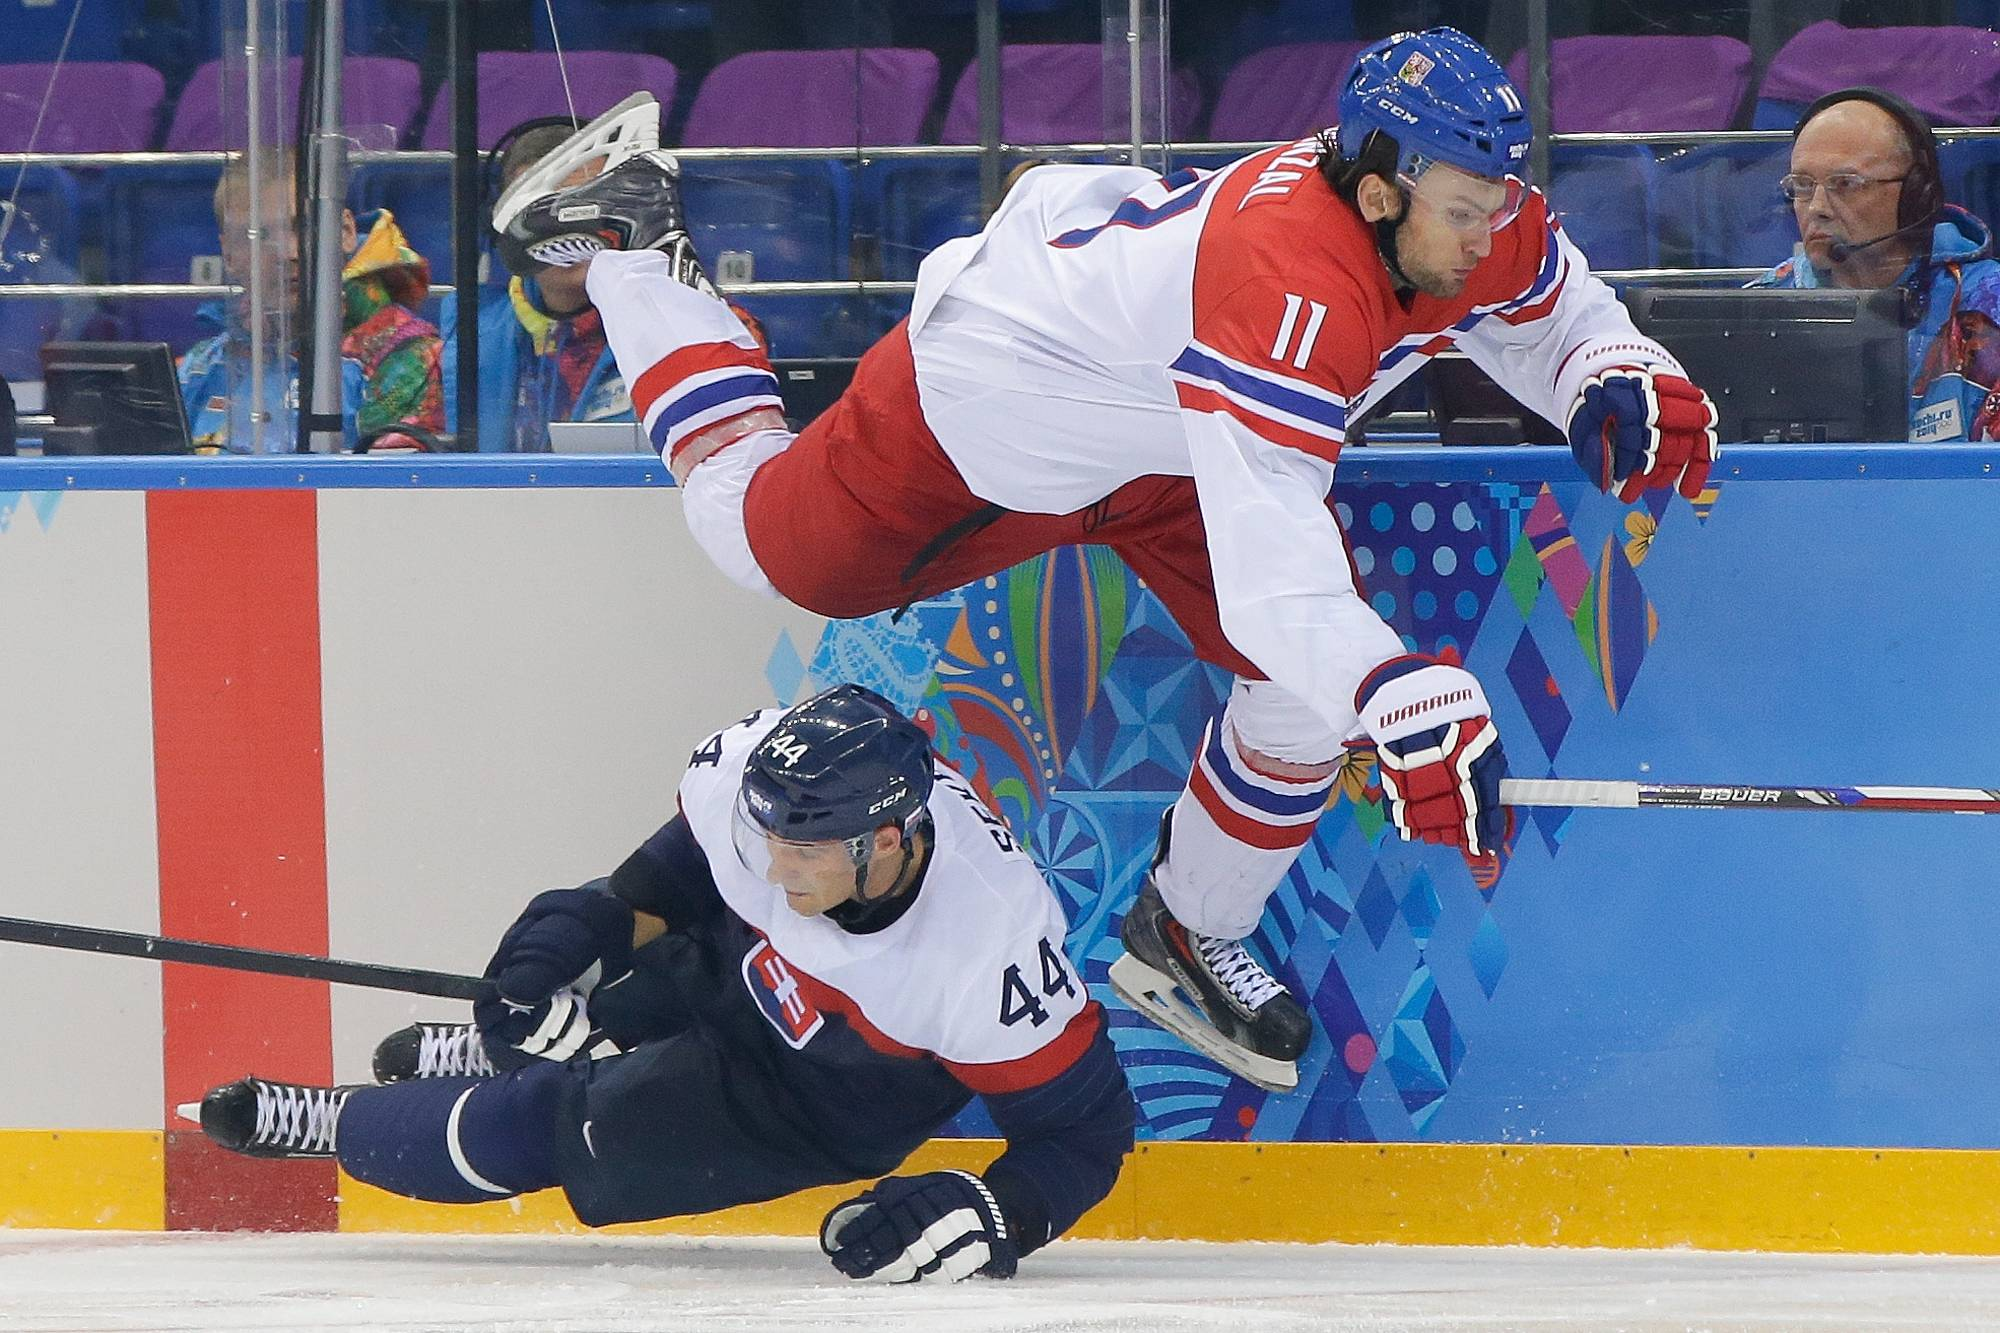 Czech Republic forward Martin Hanzal leaps over Slovakia defenseman Andrej Sekera during the third period.